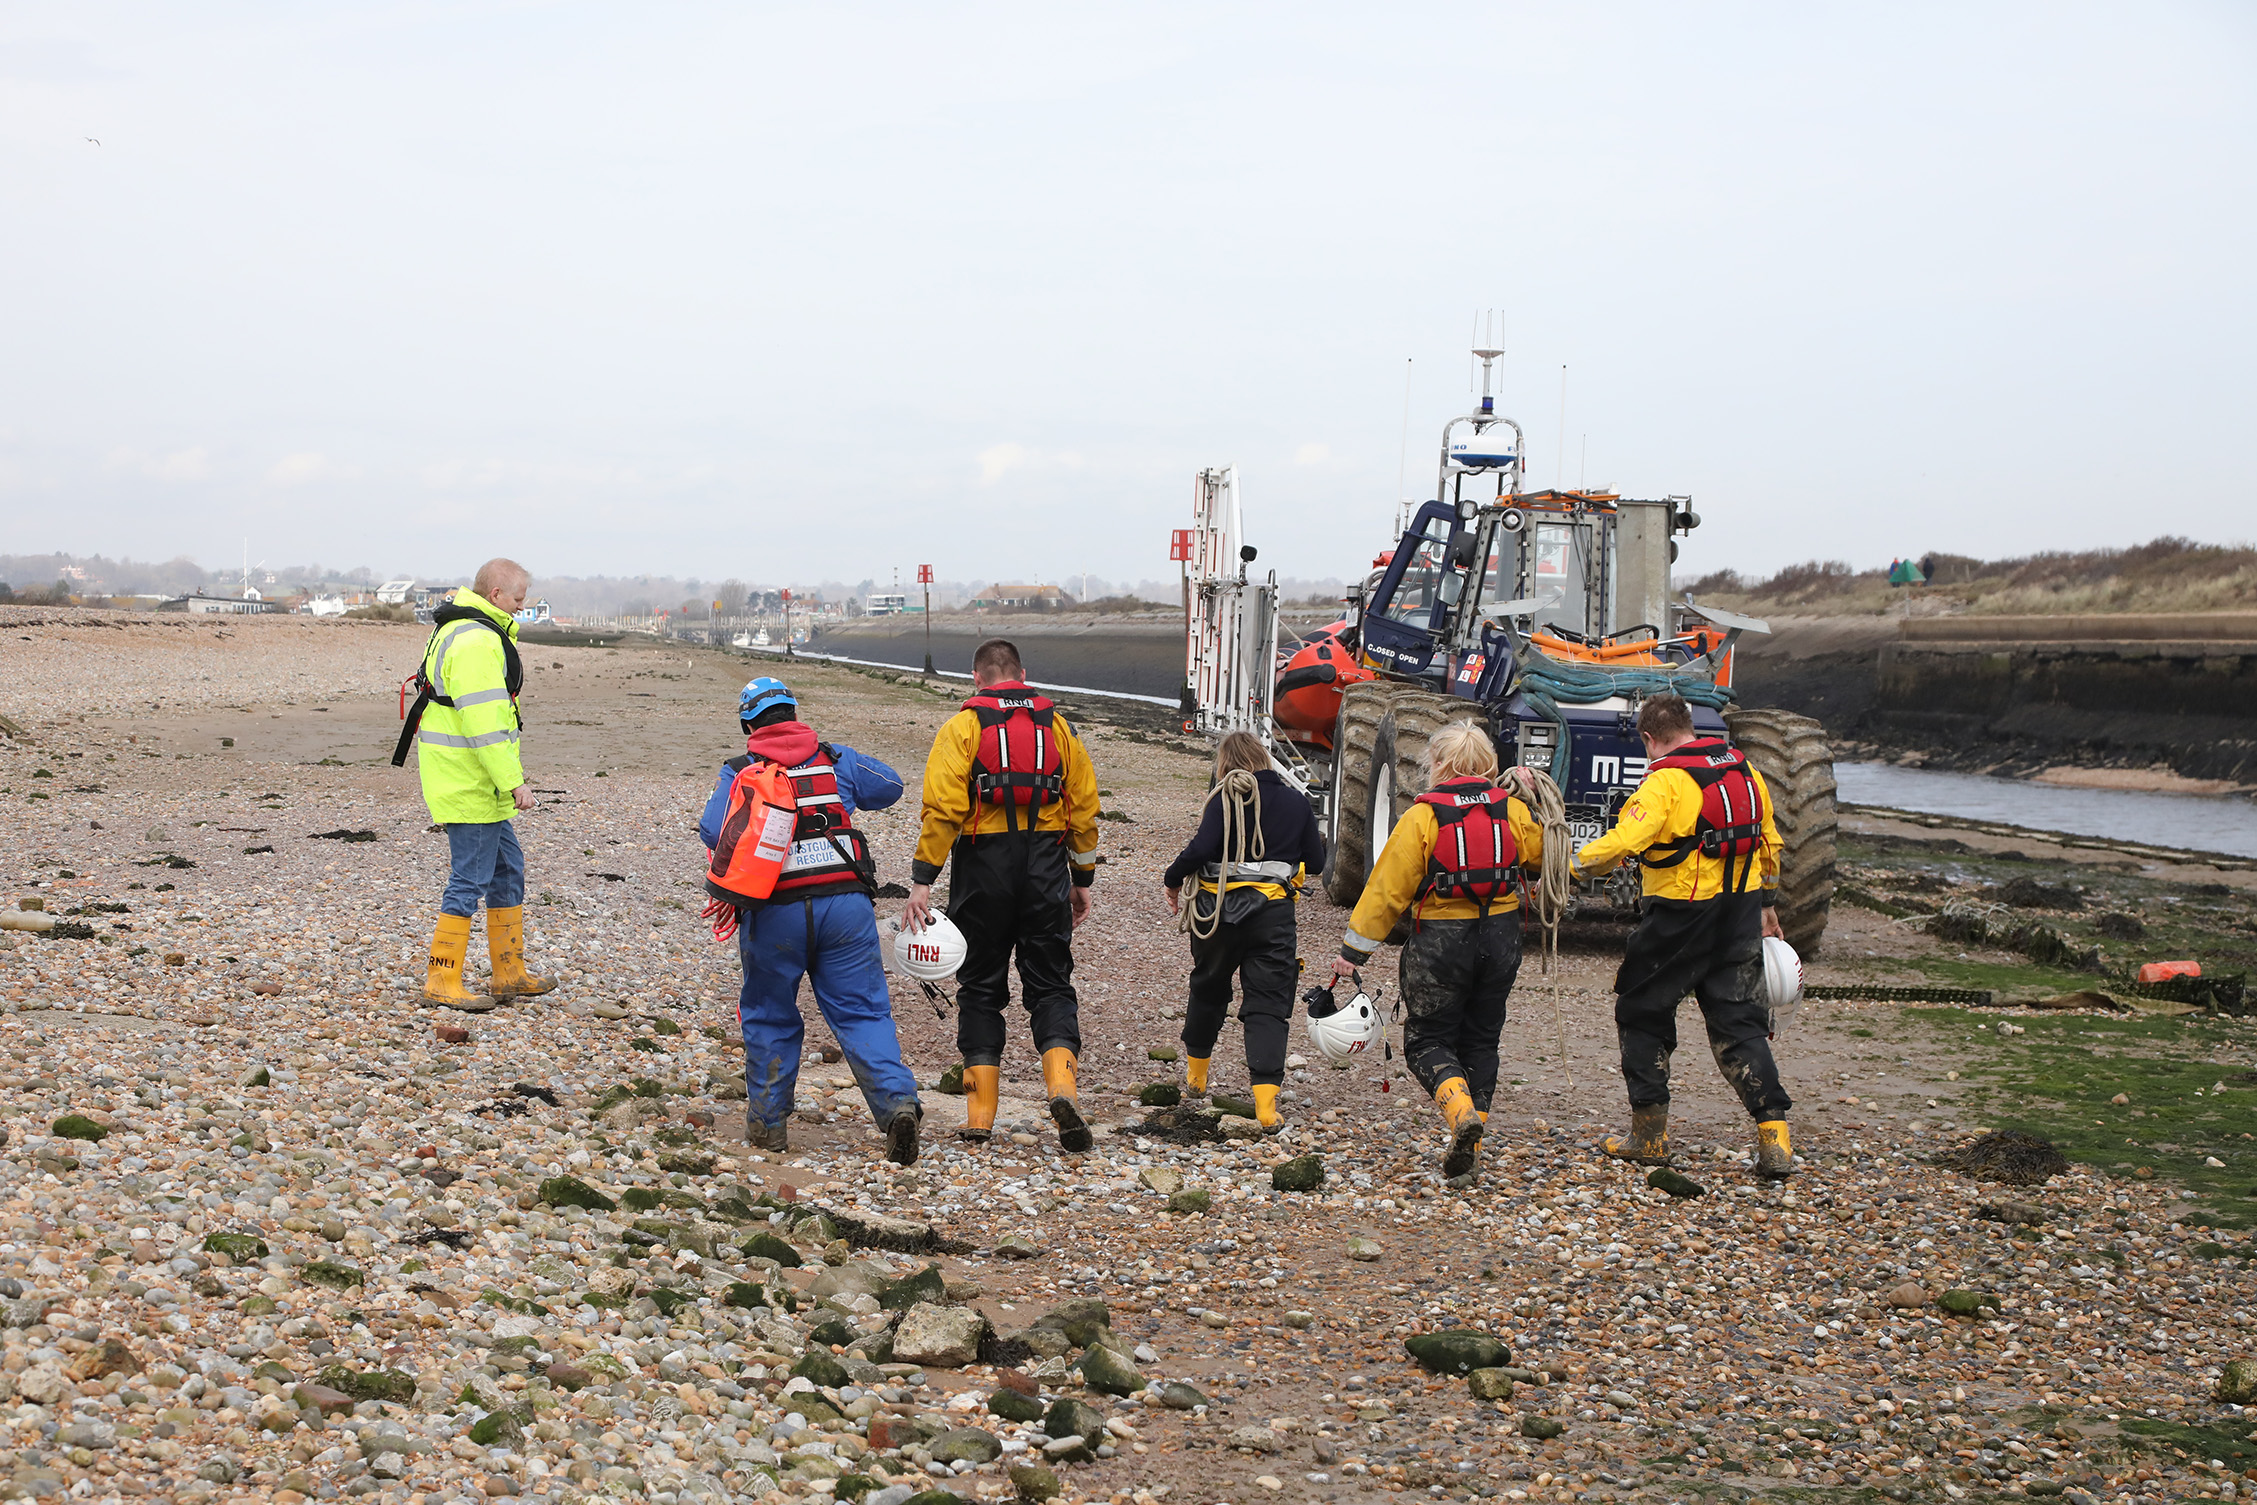 members of the RNLI volunteer crew returning to the trailer in preparation of returning to the staion